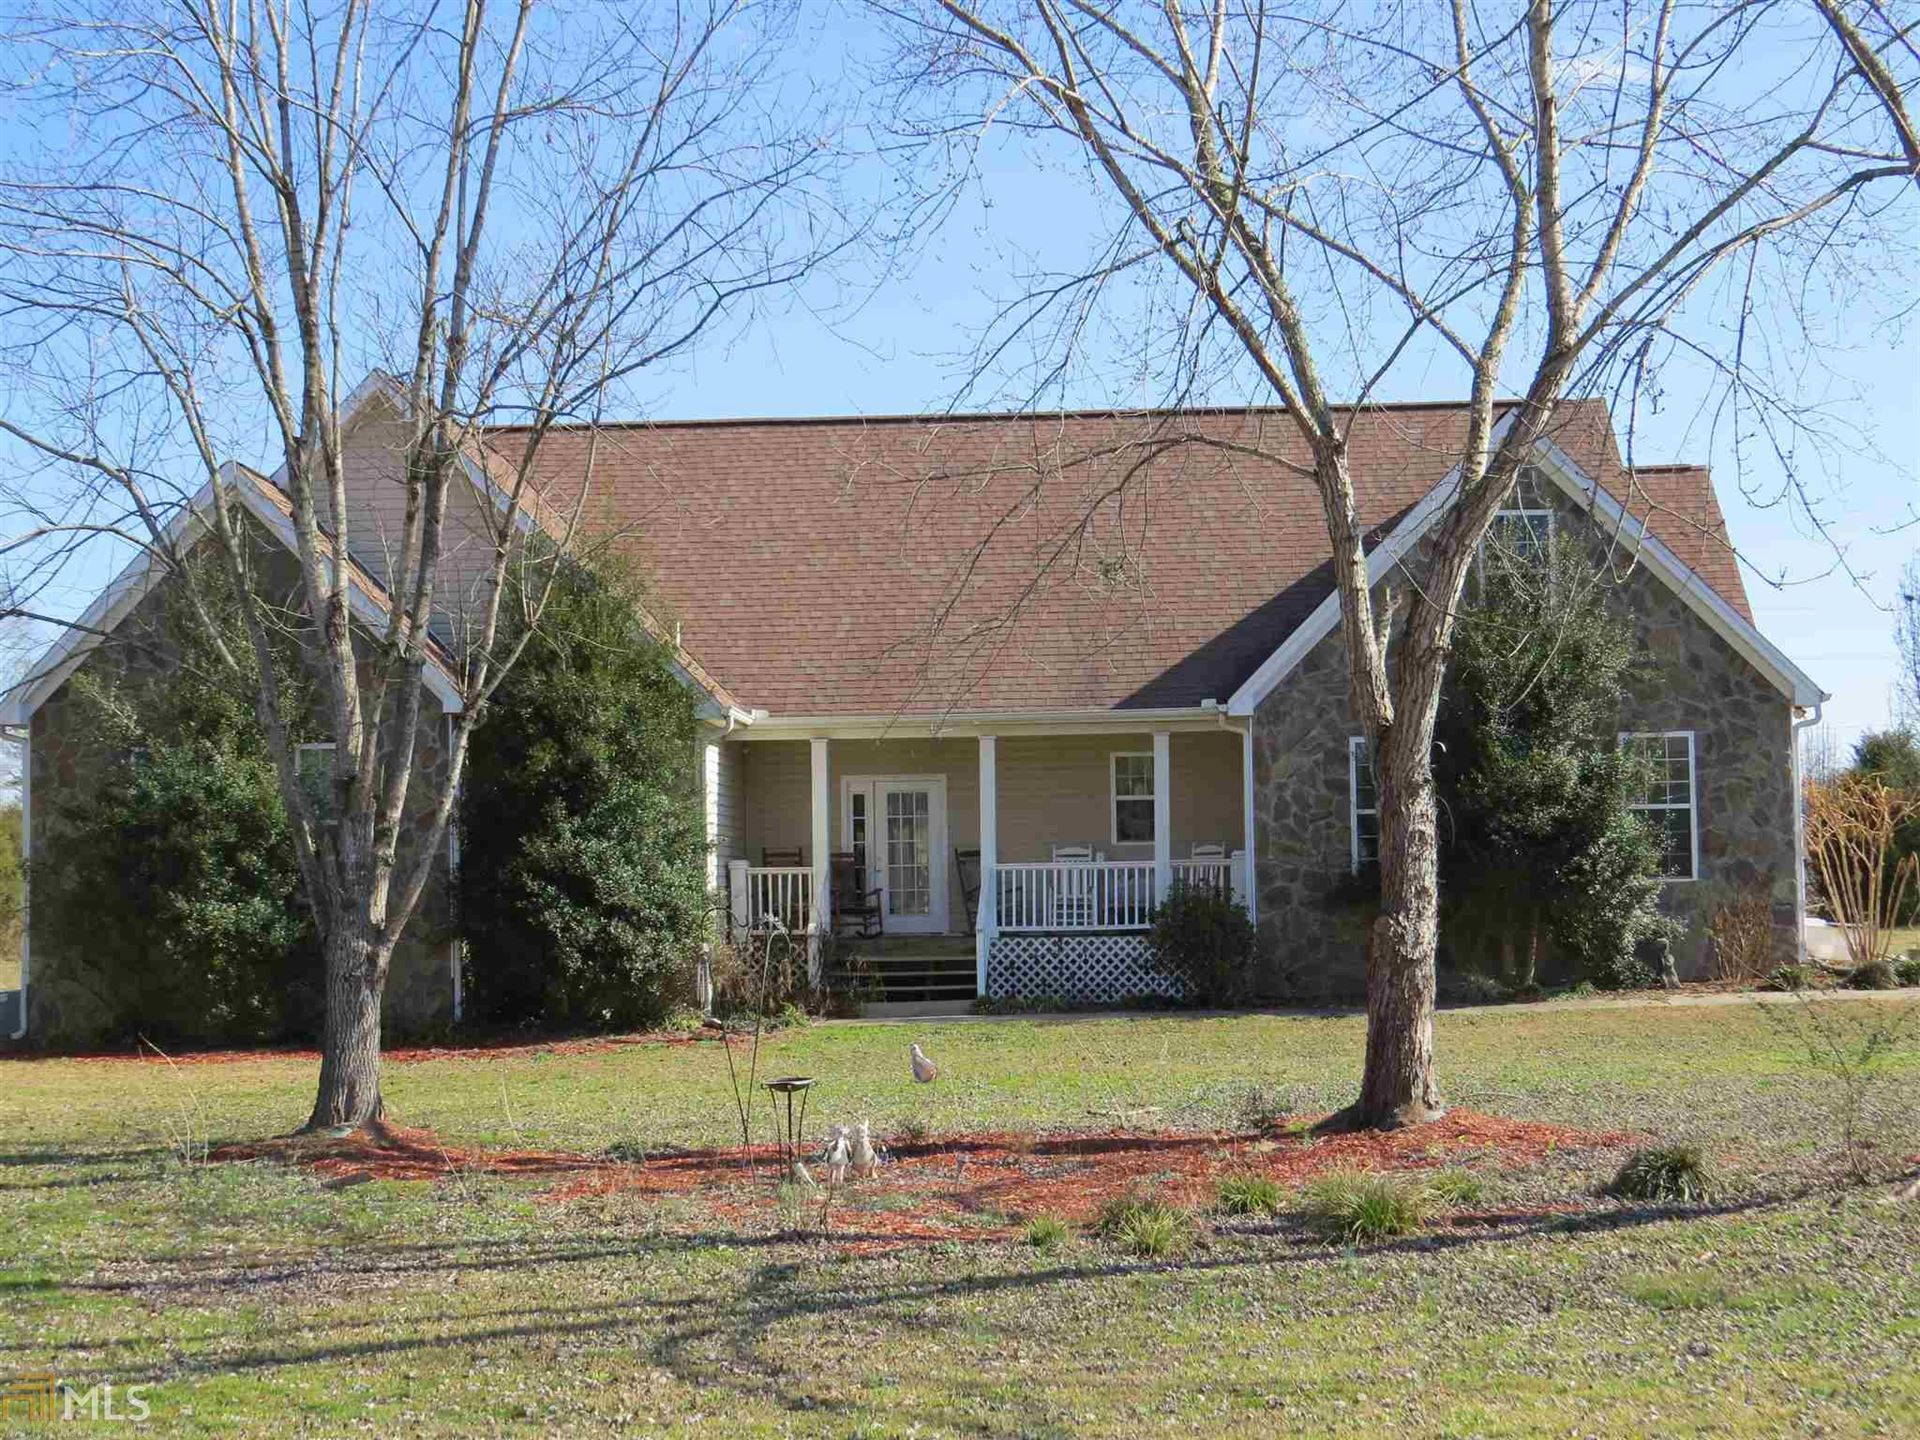 14 Dunbar School Rd, Williamson, GA 30292 - #: 8912166